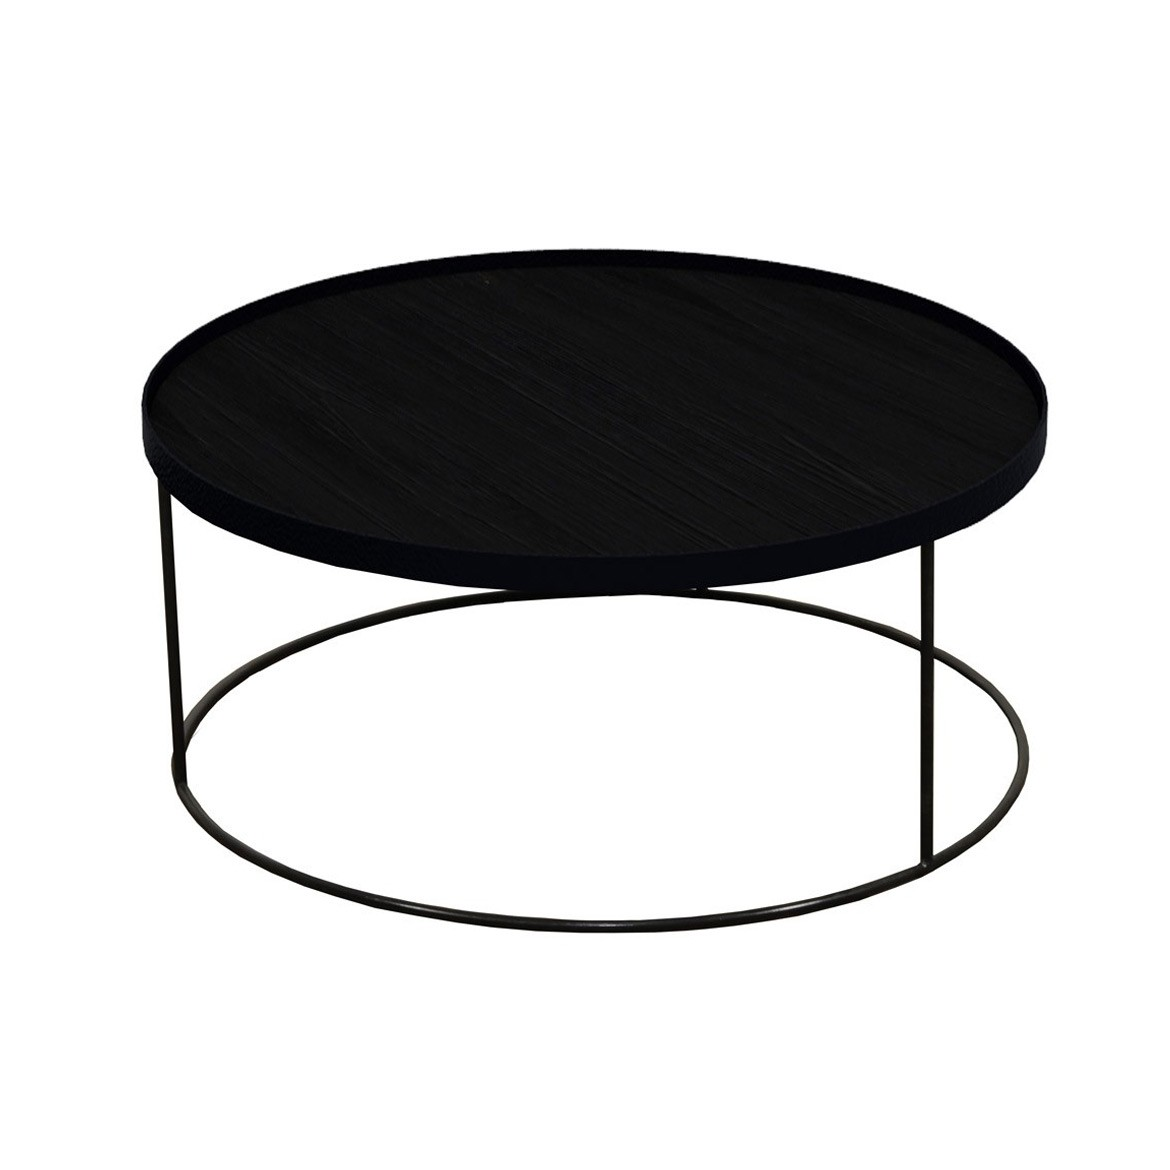 Notre Monde Round Tray Table - Extra Low